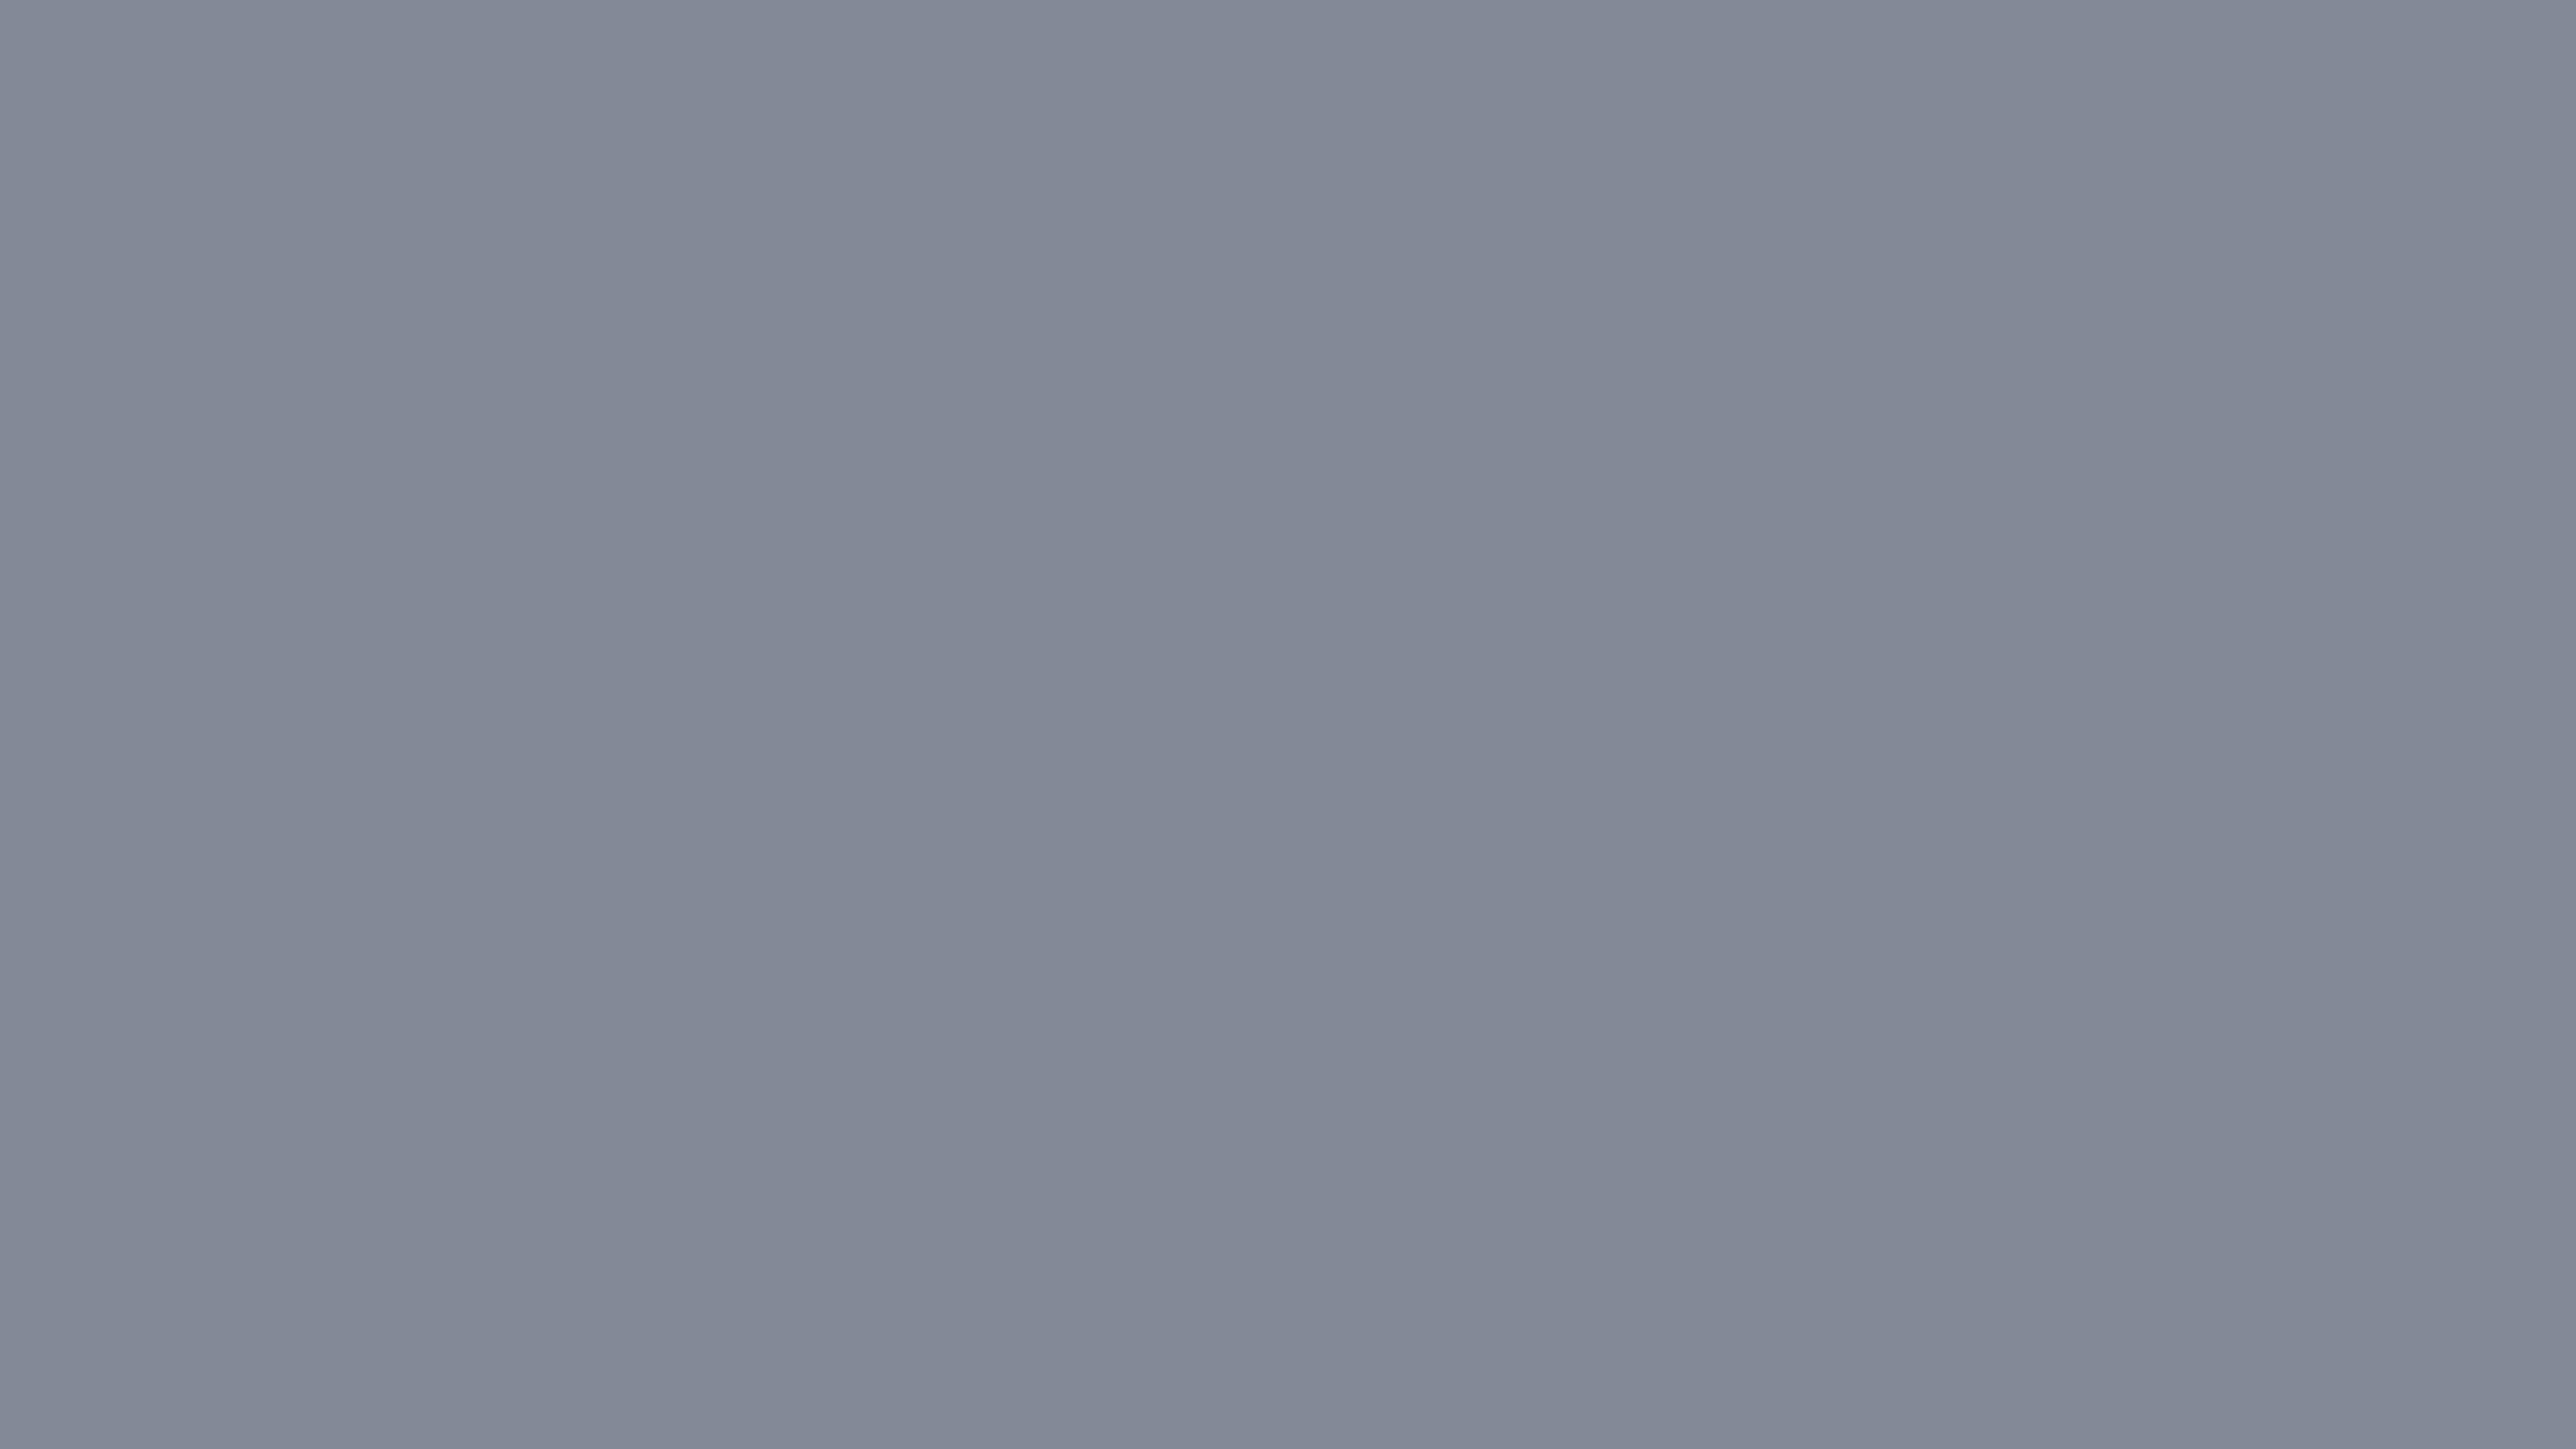 7680x4320 Roman Silver Solid Color Background